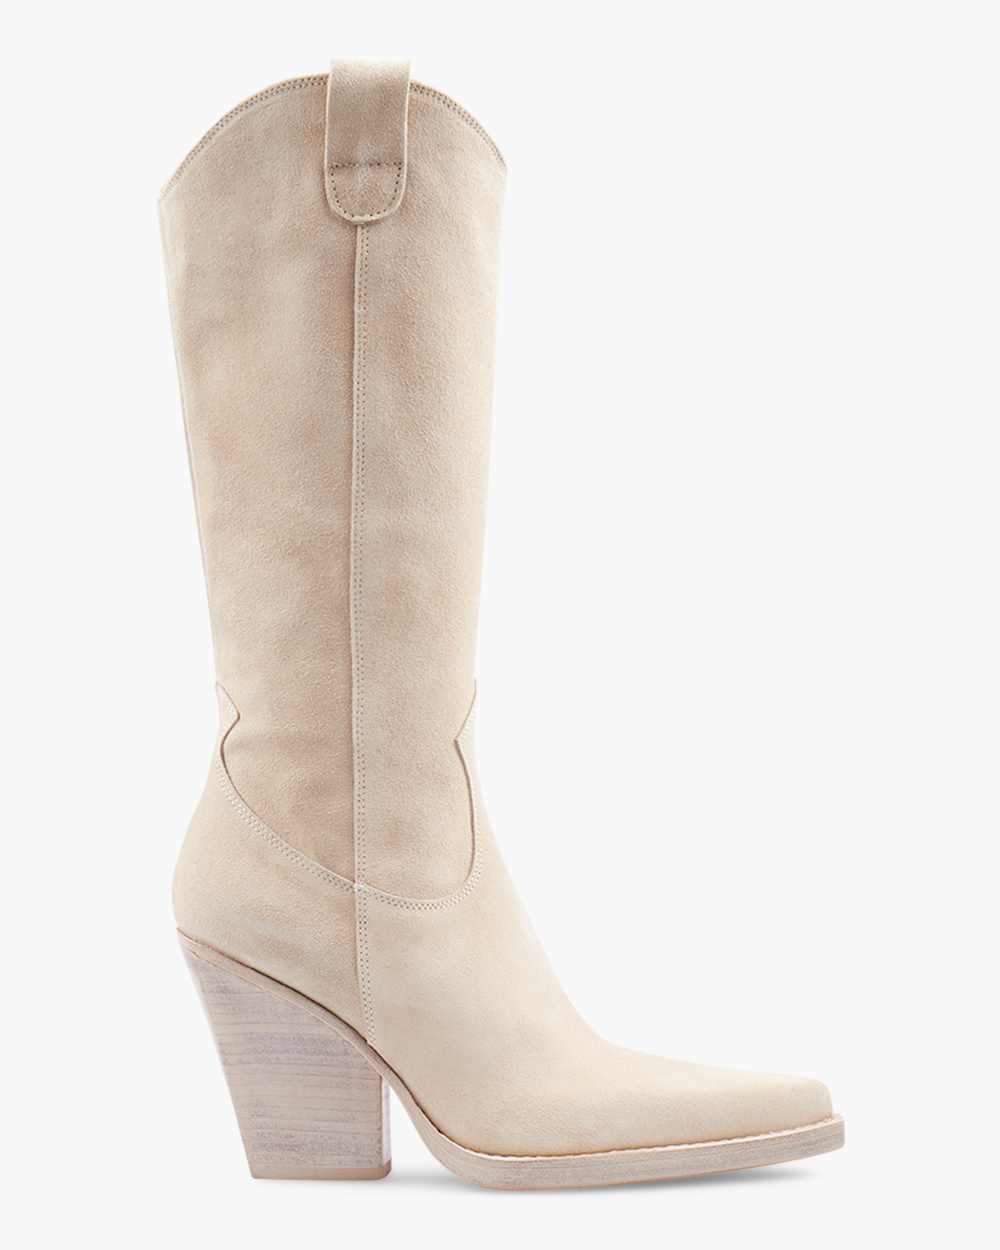 VEGAS SUEDE BOOTS